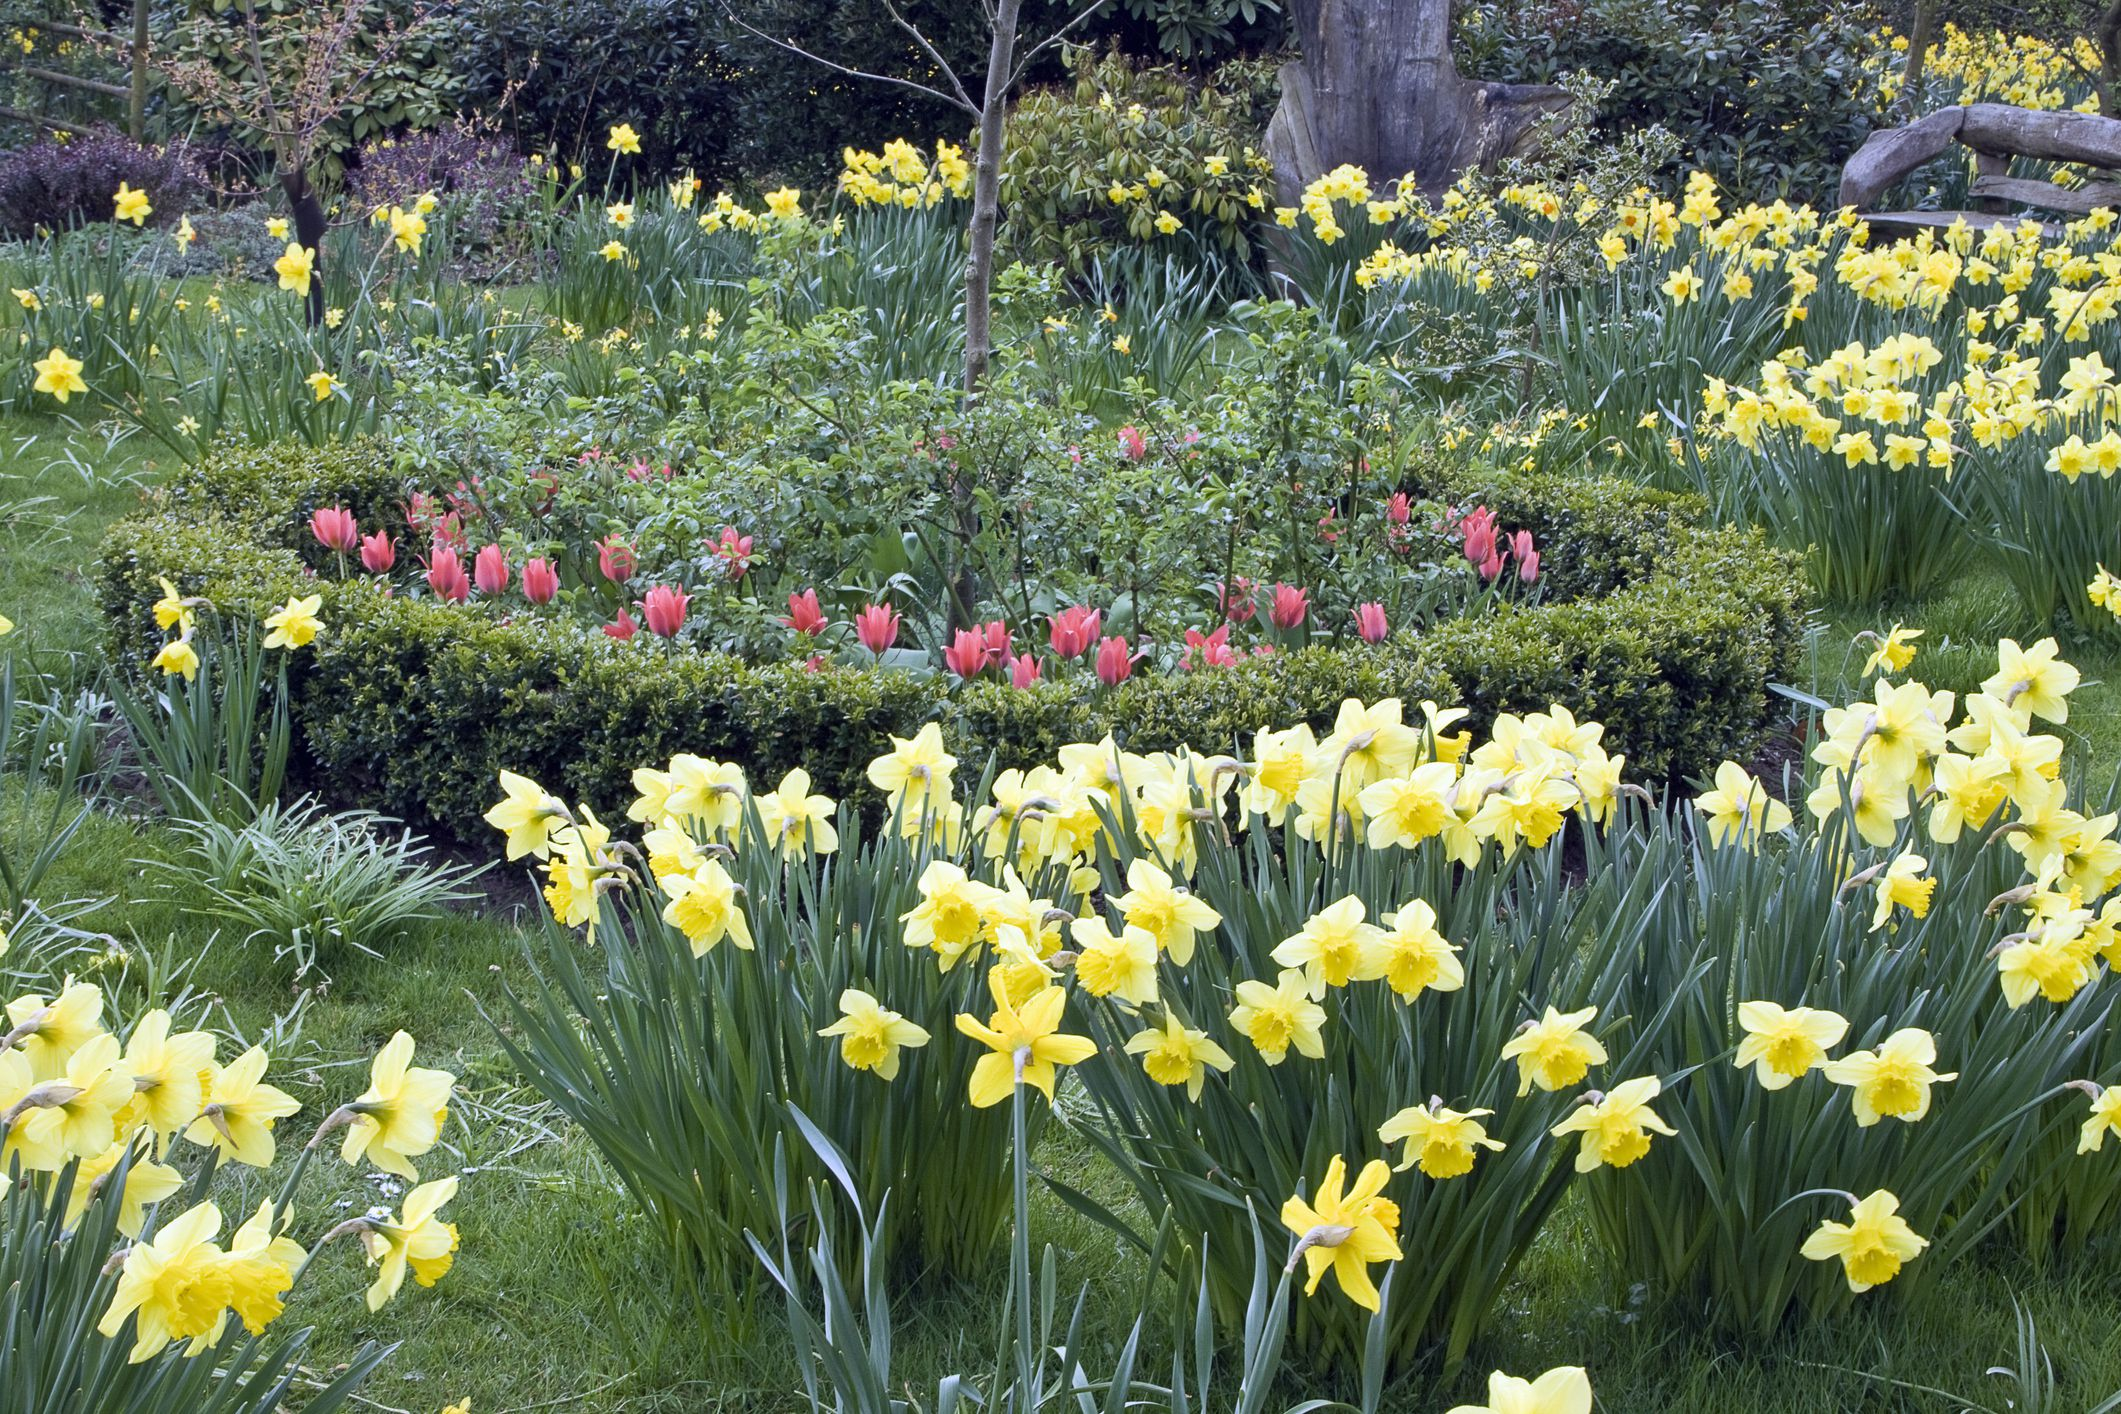 Early spring garden planted with daffodils (Narcissus), pink tulips (Tulipa) and circular box hedge (Buxus), Millenium Garden, Lichfield, Staffordshire, UK (NGS)